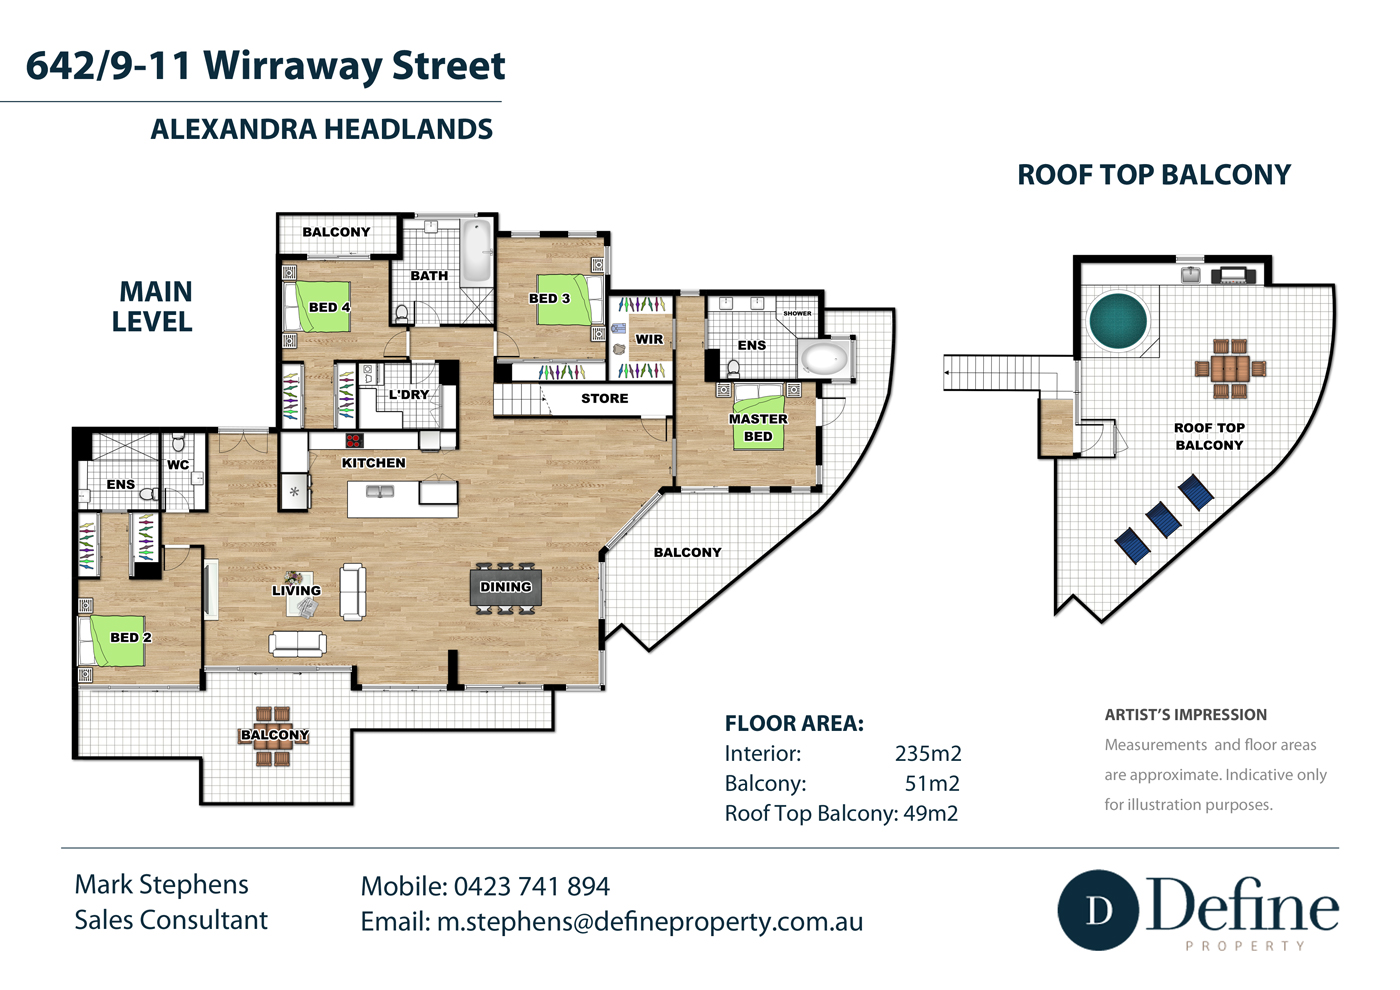 real estate floor plans 3d house sunshine coast queensland a preview of our real estate floor plans